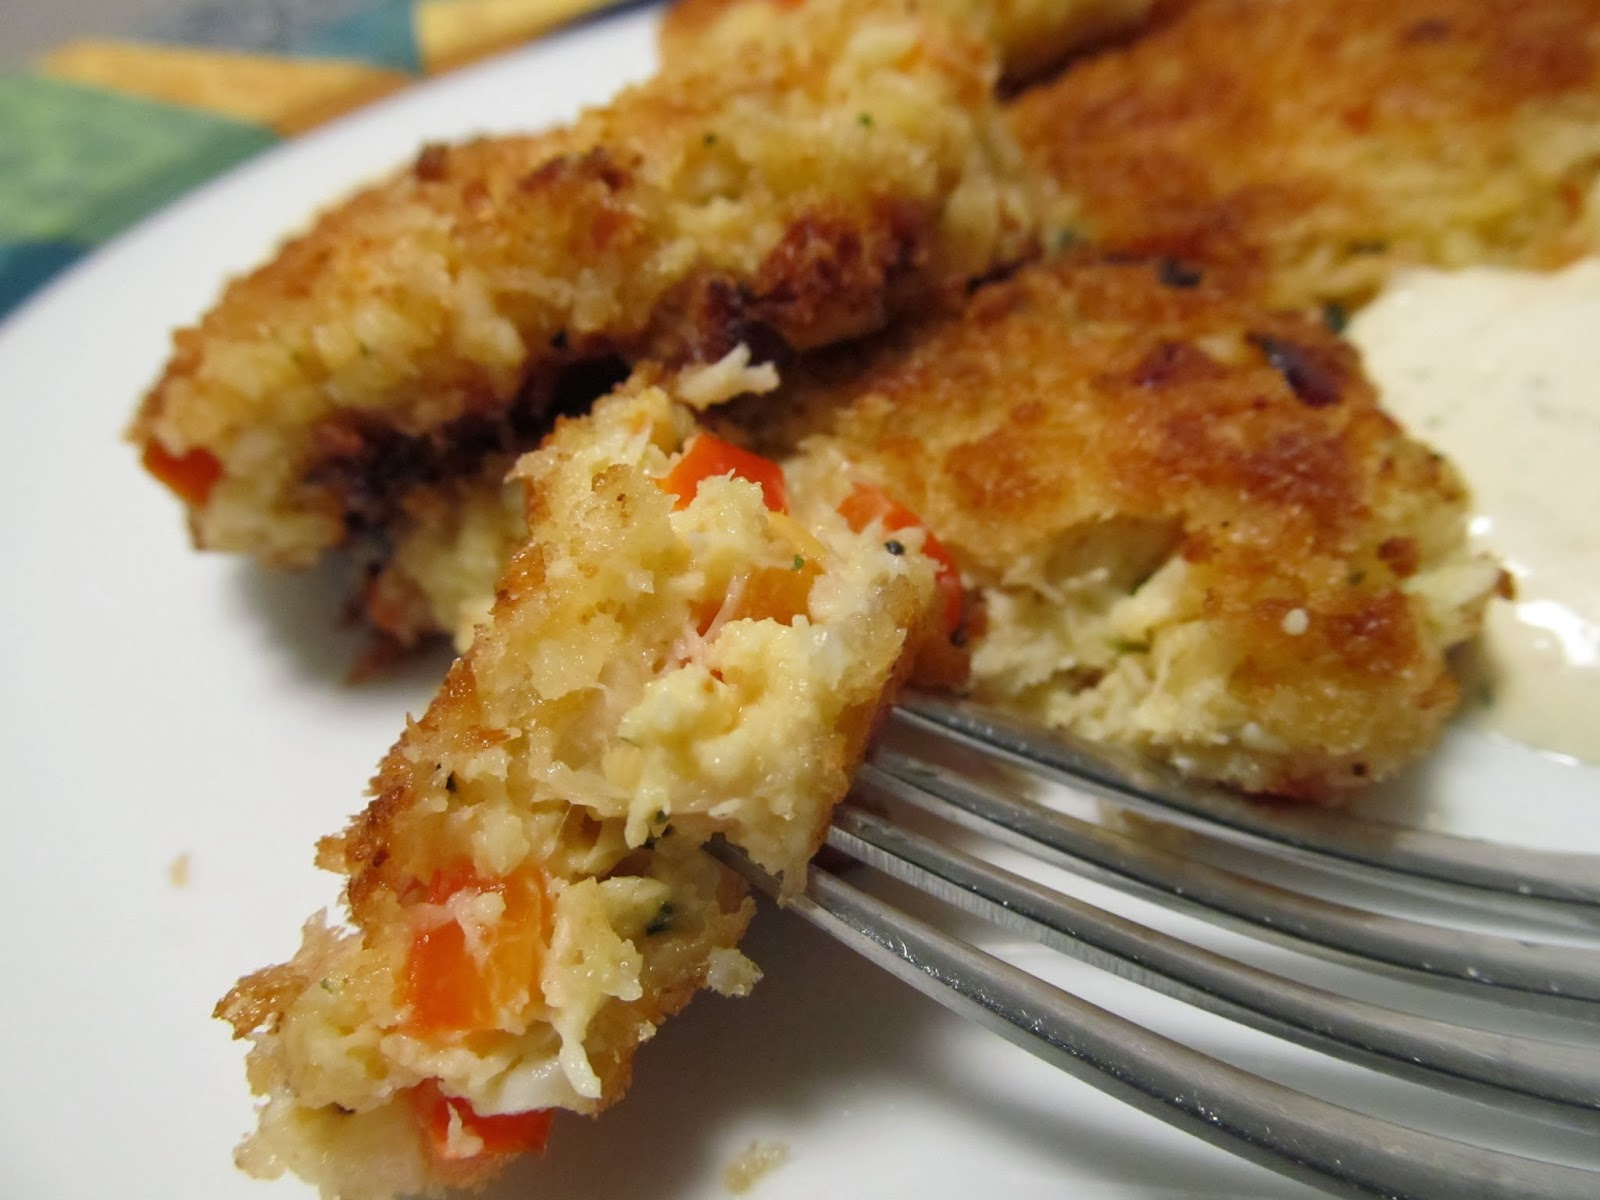 Spicy Crab Cakes with Lemon Aioli